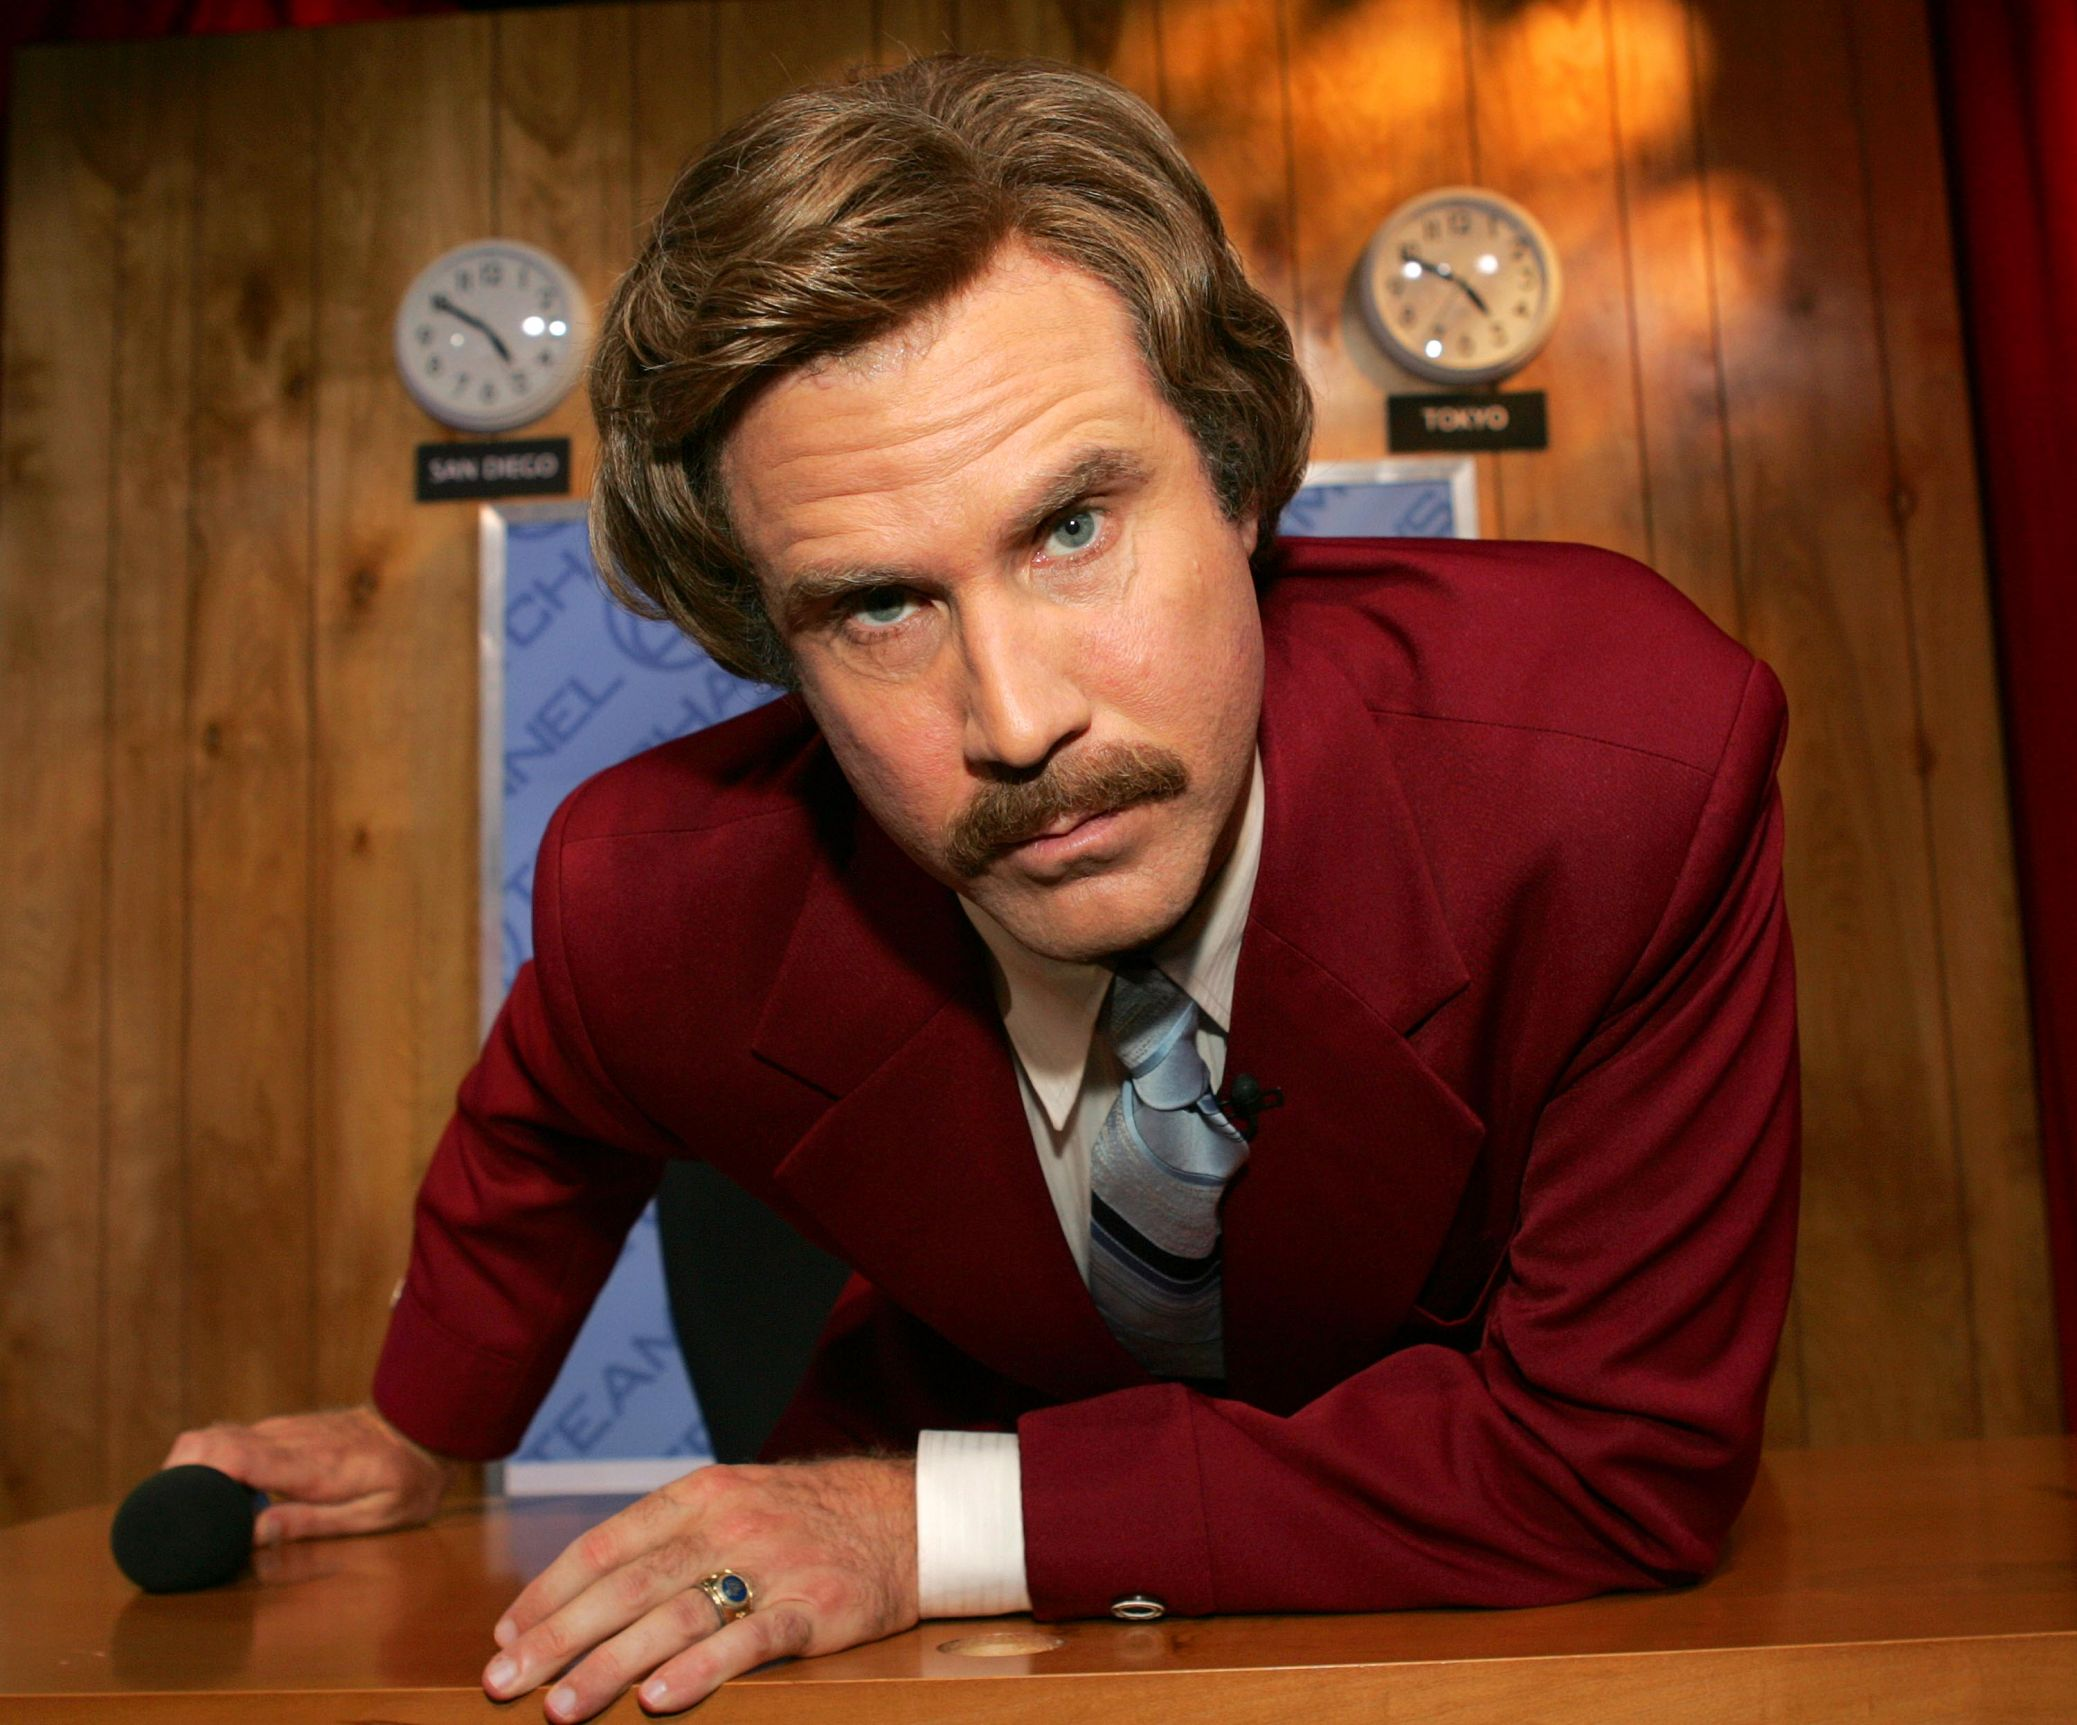 1000g8 pissed off ron burgundy blank template imgflip